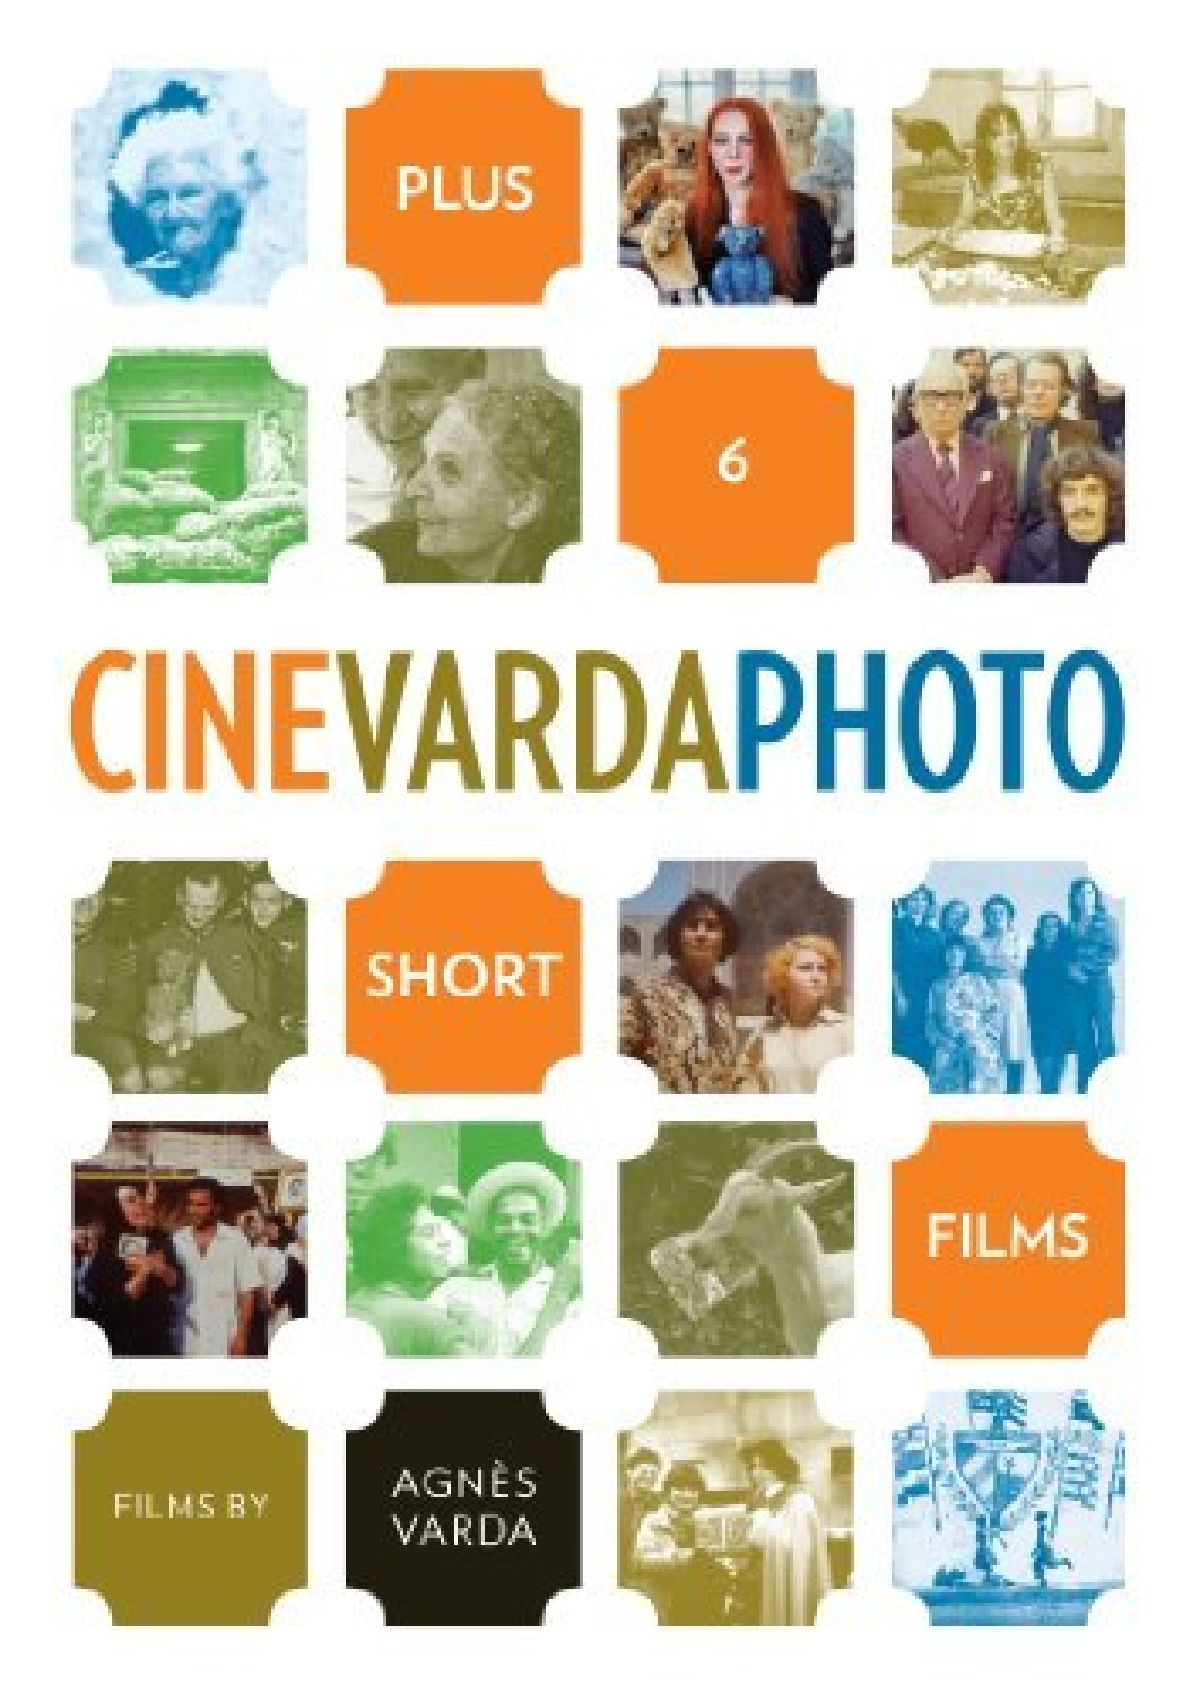 'Cinevardaphoto' movie poster